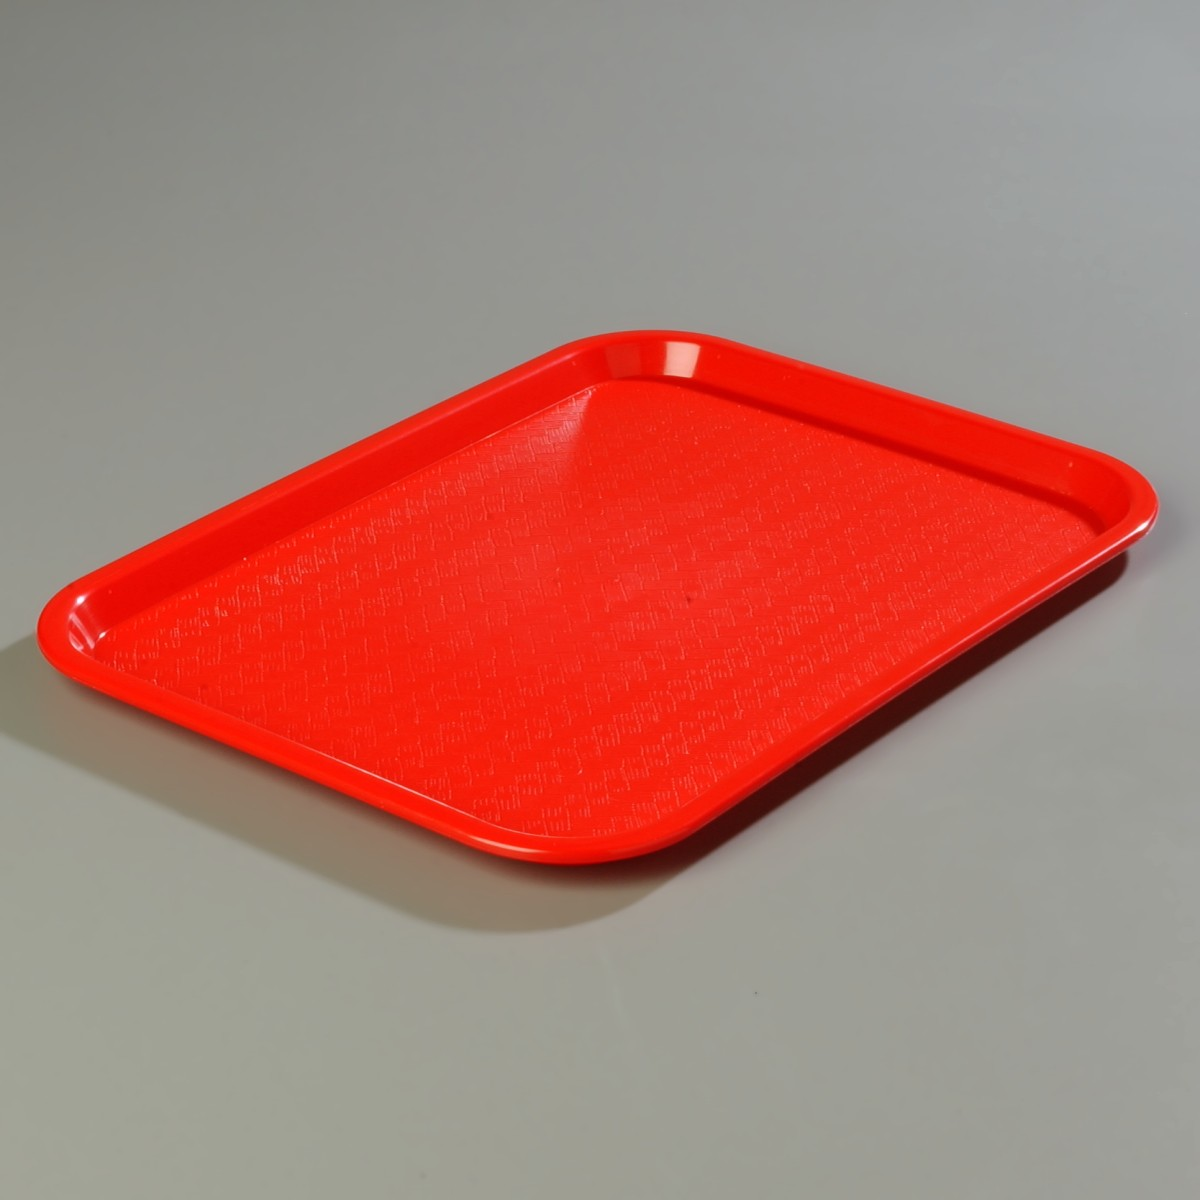 Carlisle CT141805 Tray in Red